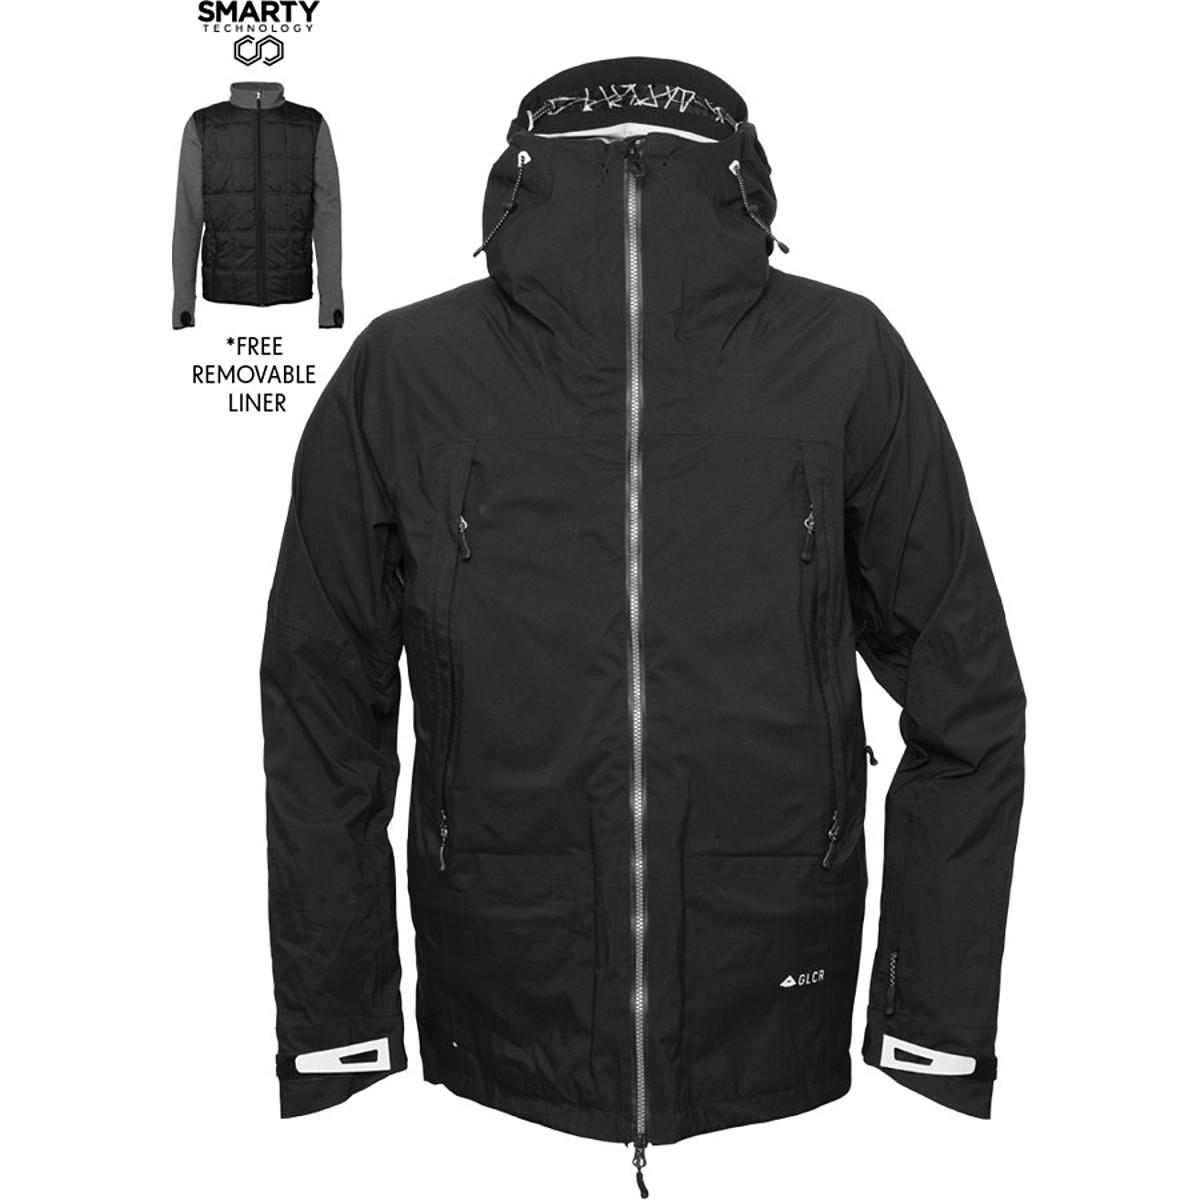 686 Smarty Serac Jacket